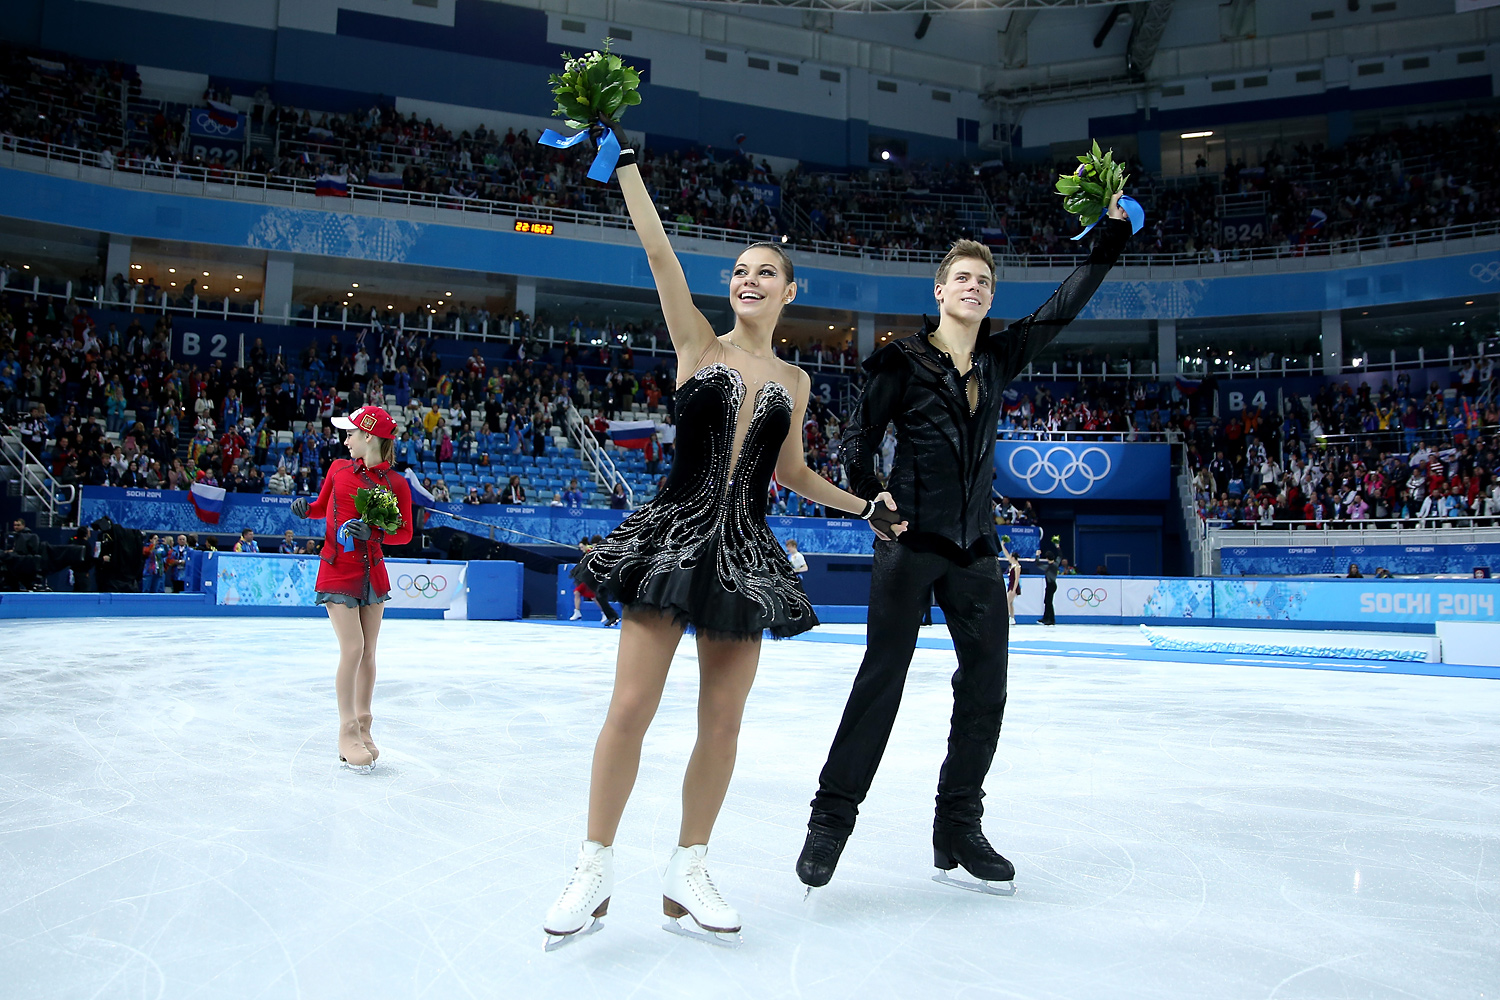 Gold Medalists Yulia Lipnitskaya, Elena Ilinykh and Nikita Katsalapov of Russia skate after the flower ceremony for the Team Figure Skating Overall during day two of the Sochi 2014 Winter Olympics at Iceberg Skating Palace on February 9, 2014 in Sochi, Russia.